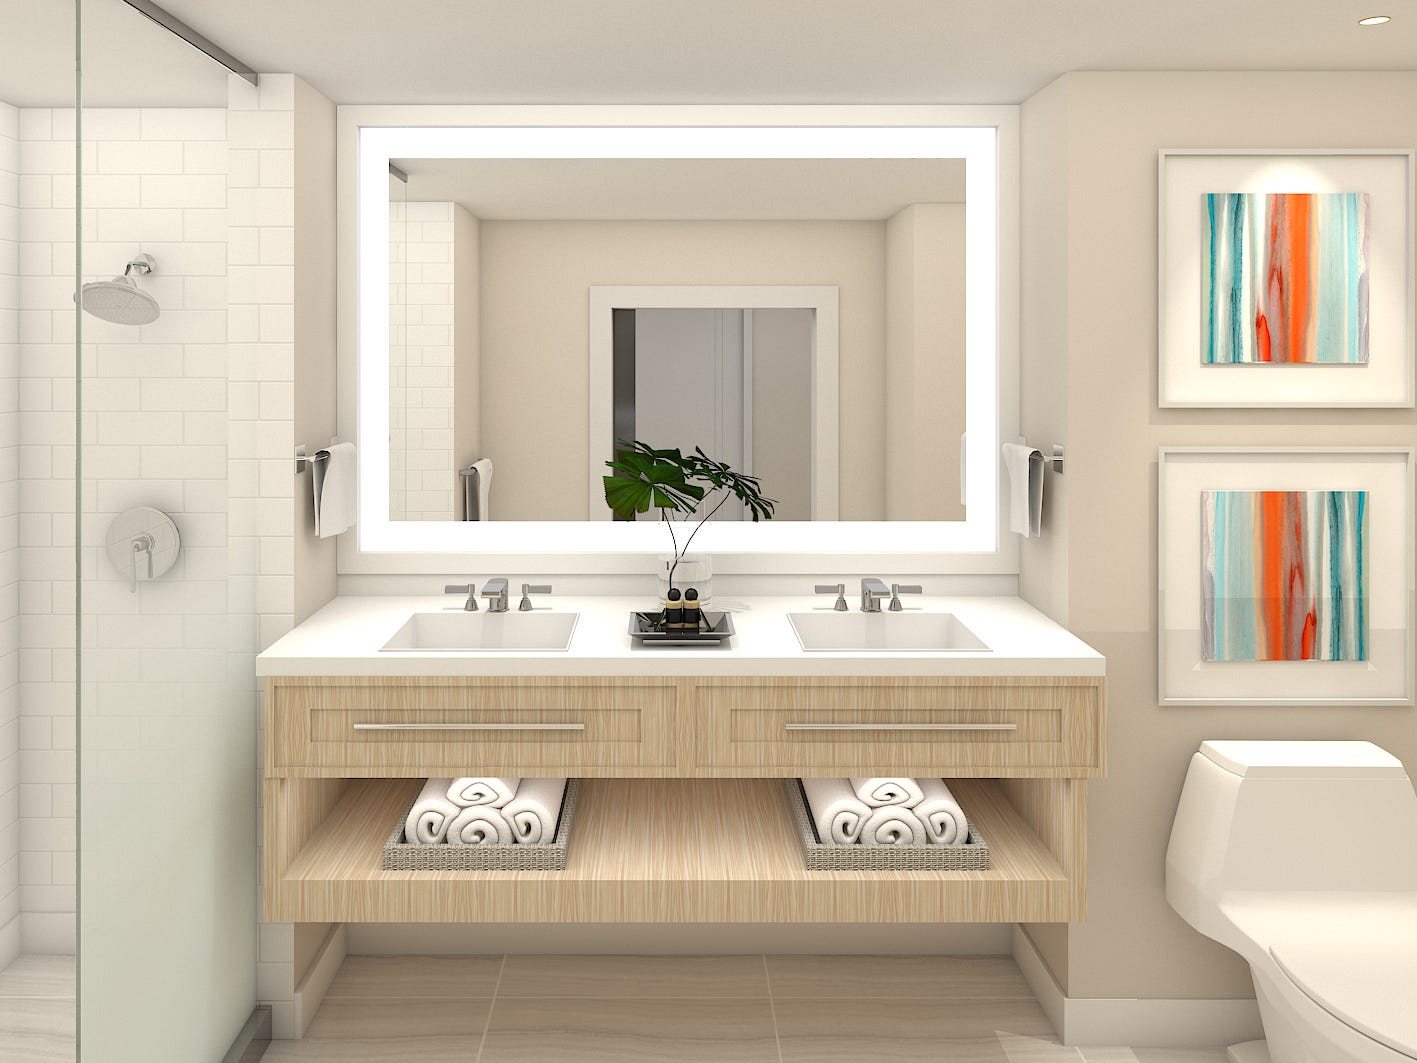 The bathroom in a guest room at the planned Sunseeker Resort Charlotte Harbor in southwest Florida. Discount airline Allegiant is building the resort.